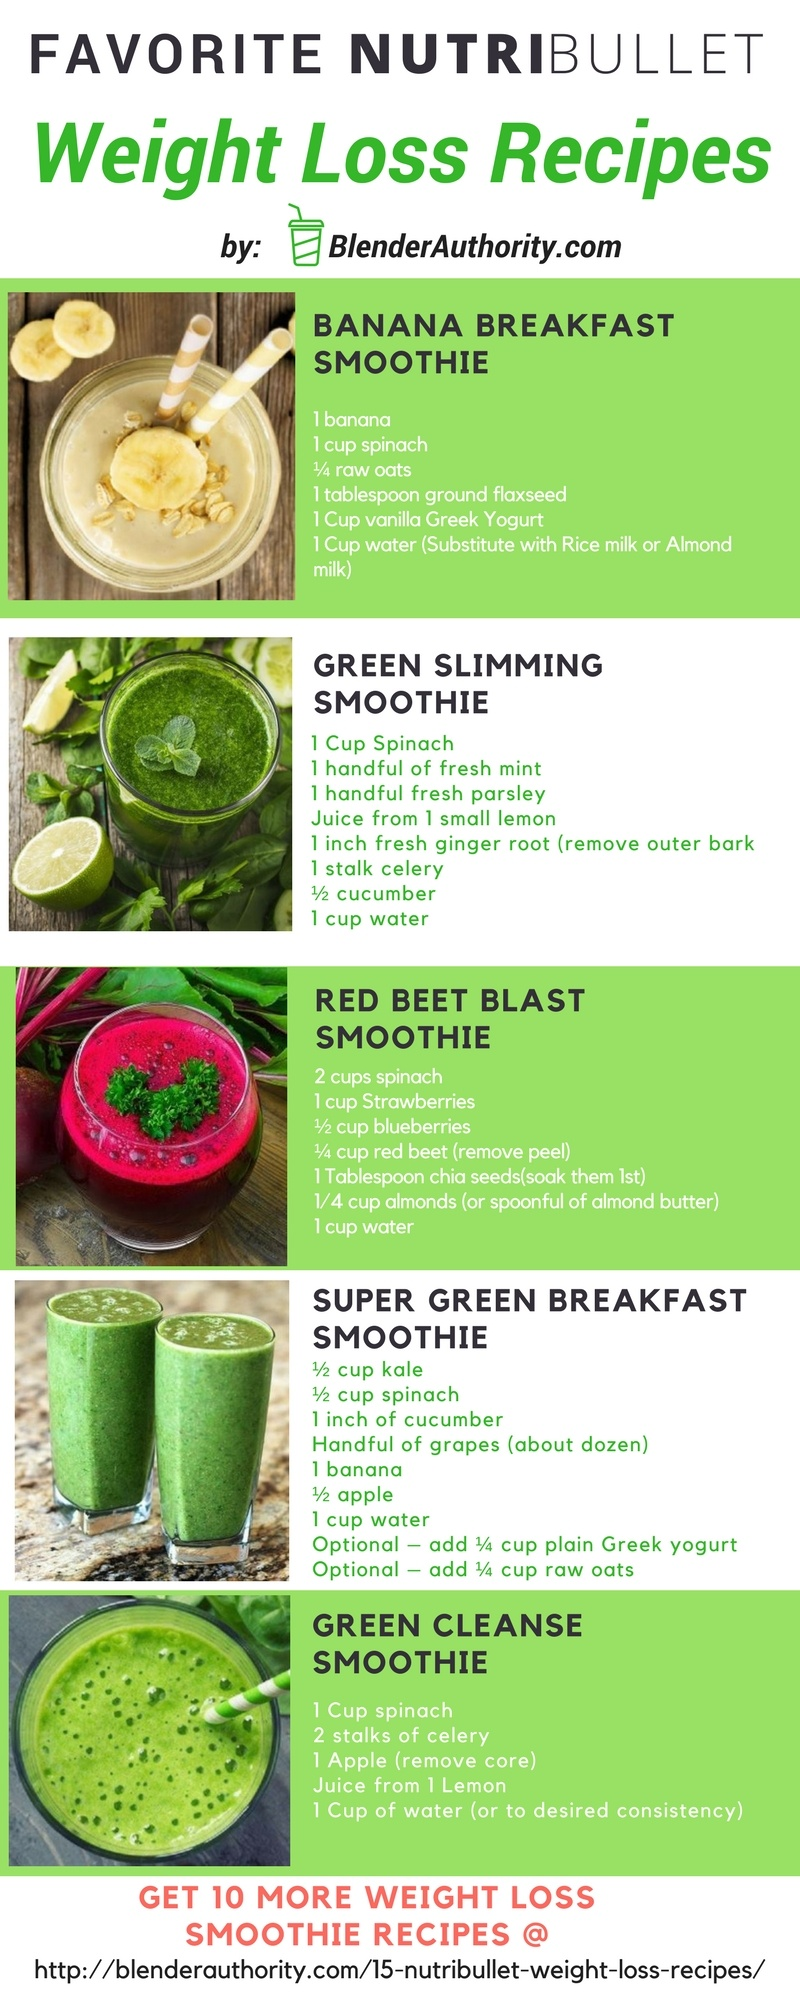 Do homemade smoothies help lose weight